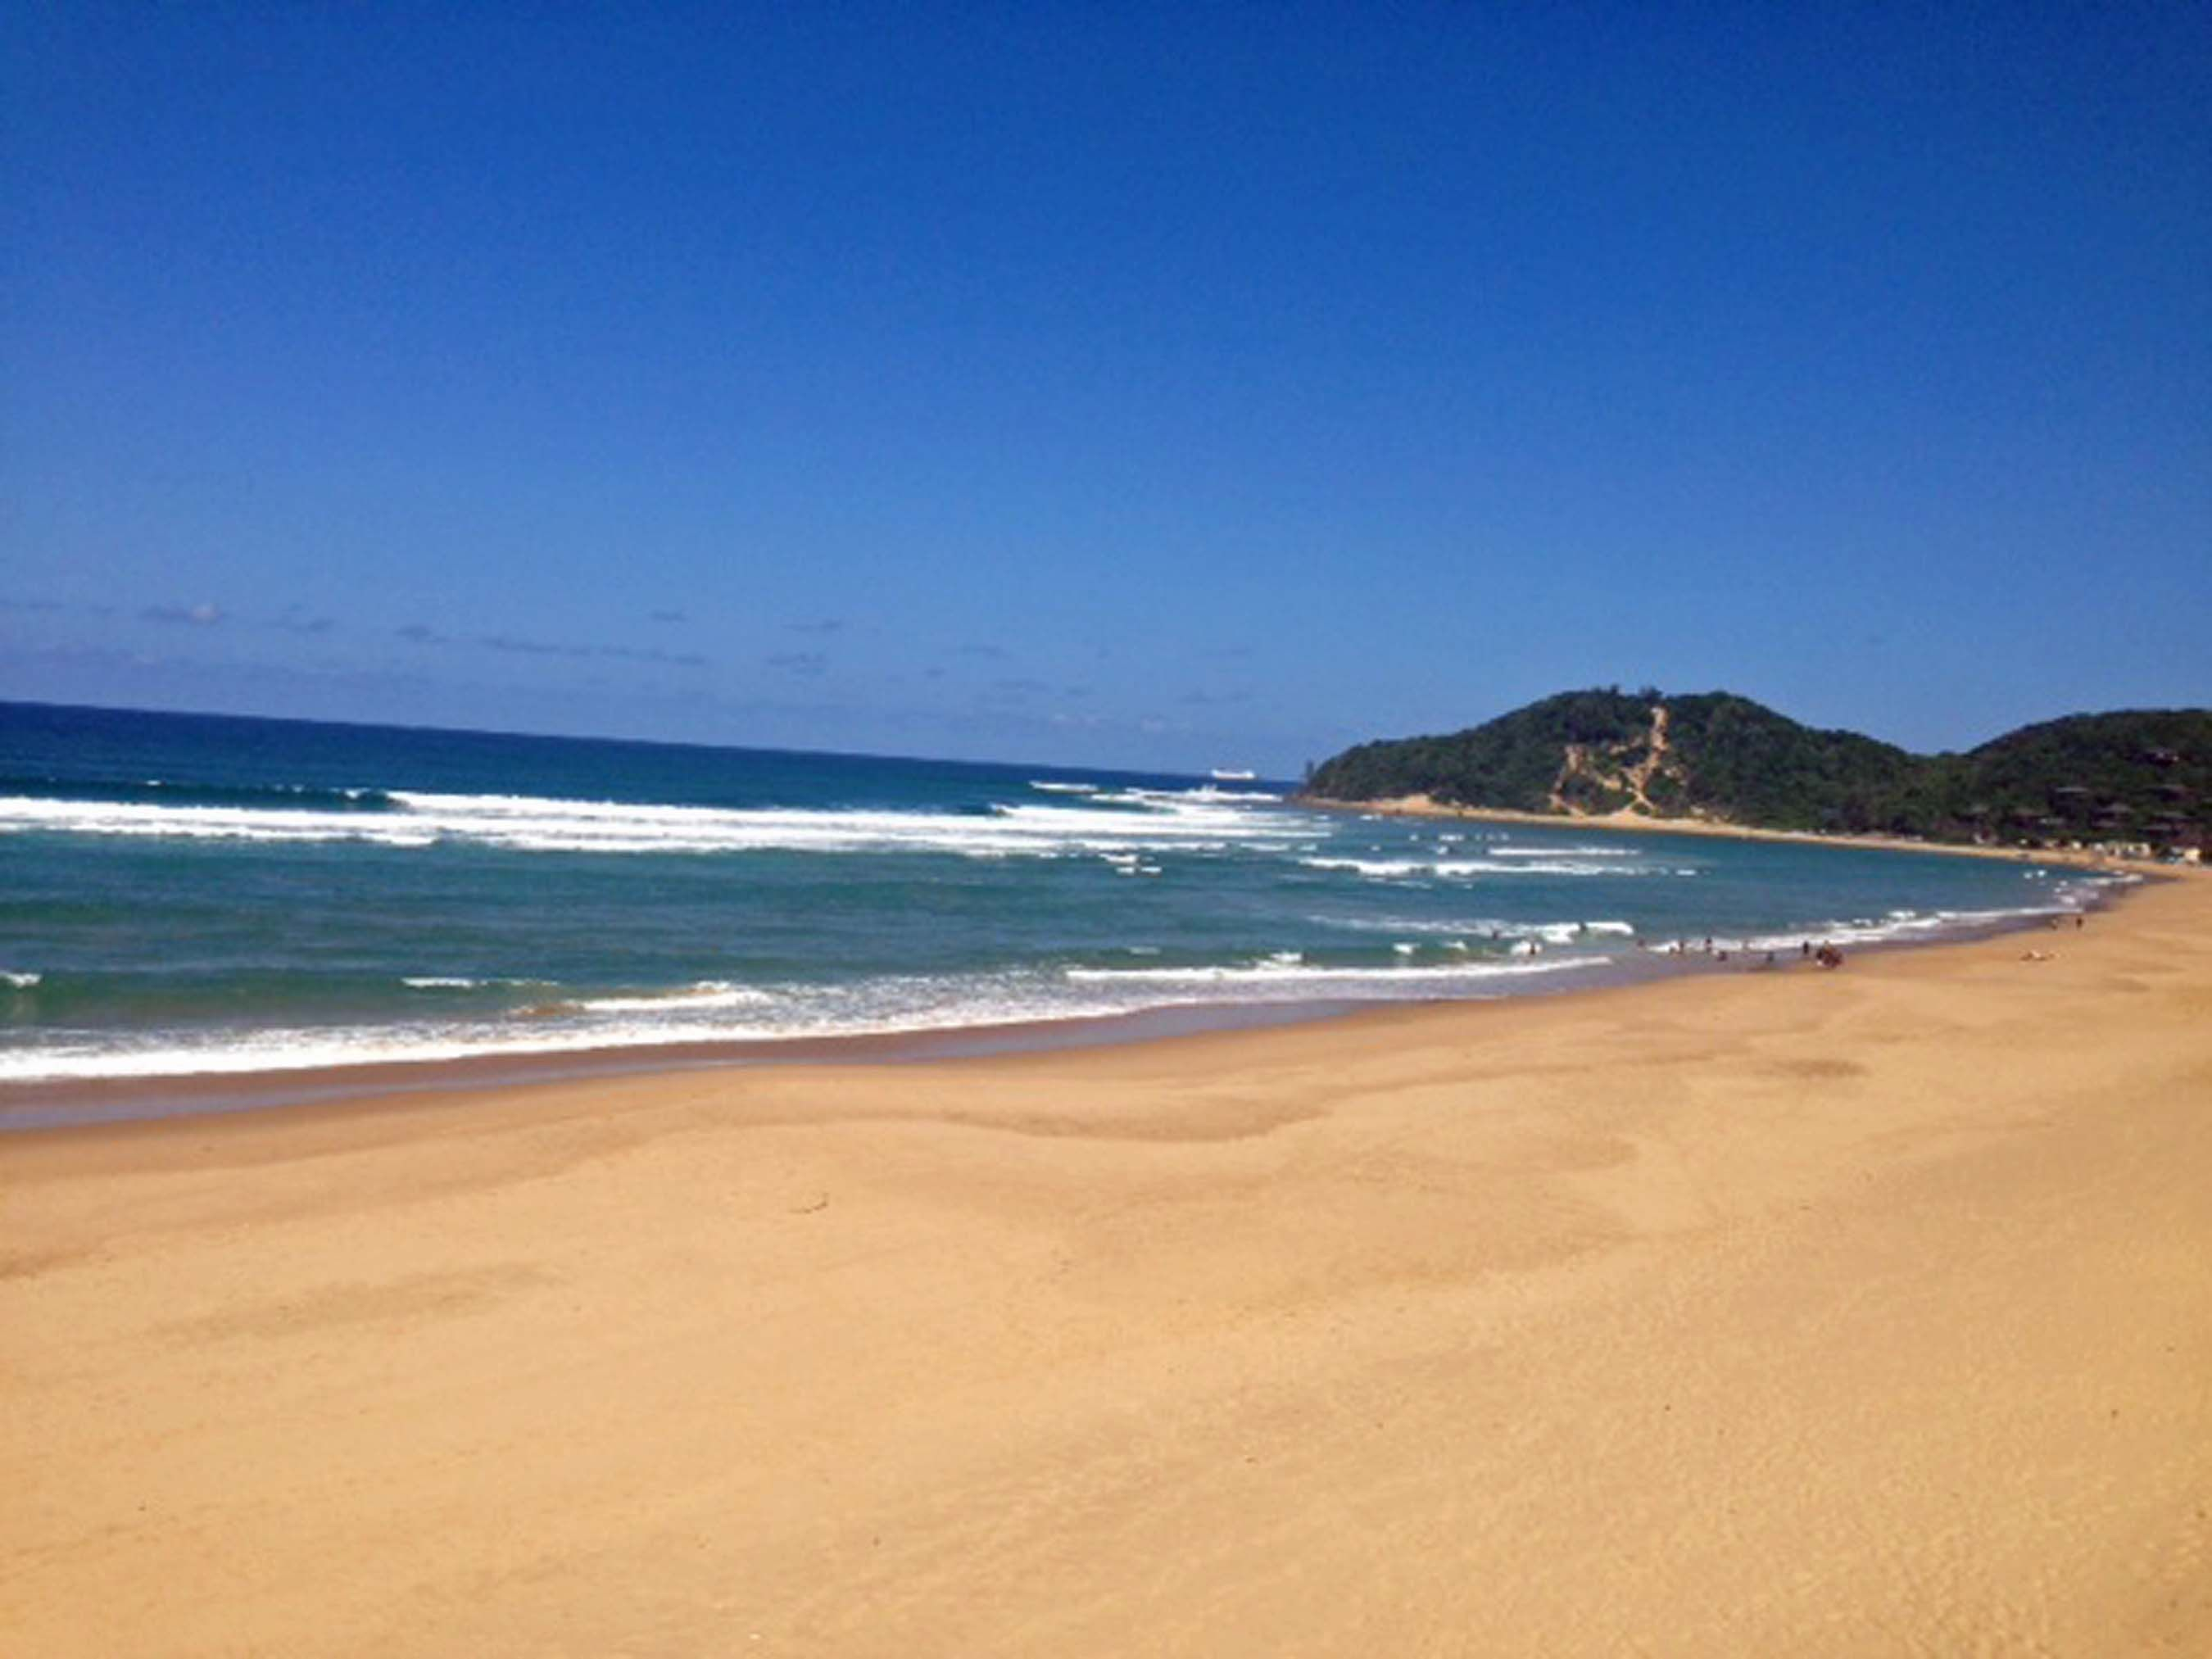 Imagine stepping from your Private Oceanfront Resort Accommodation, to be greeted by Cloudless Skies, Sparkling Turquoise Waters and White Sandy Beaches stretching to infinity. As a guest of Paraiso do Ouro Resort, this image of Paradise becomes your daily reality. For any other or further information please email res@paraiso.co.za or contact Diane on +27 (0) 72 144 2483.